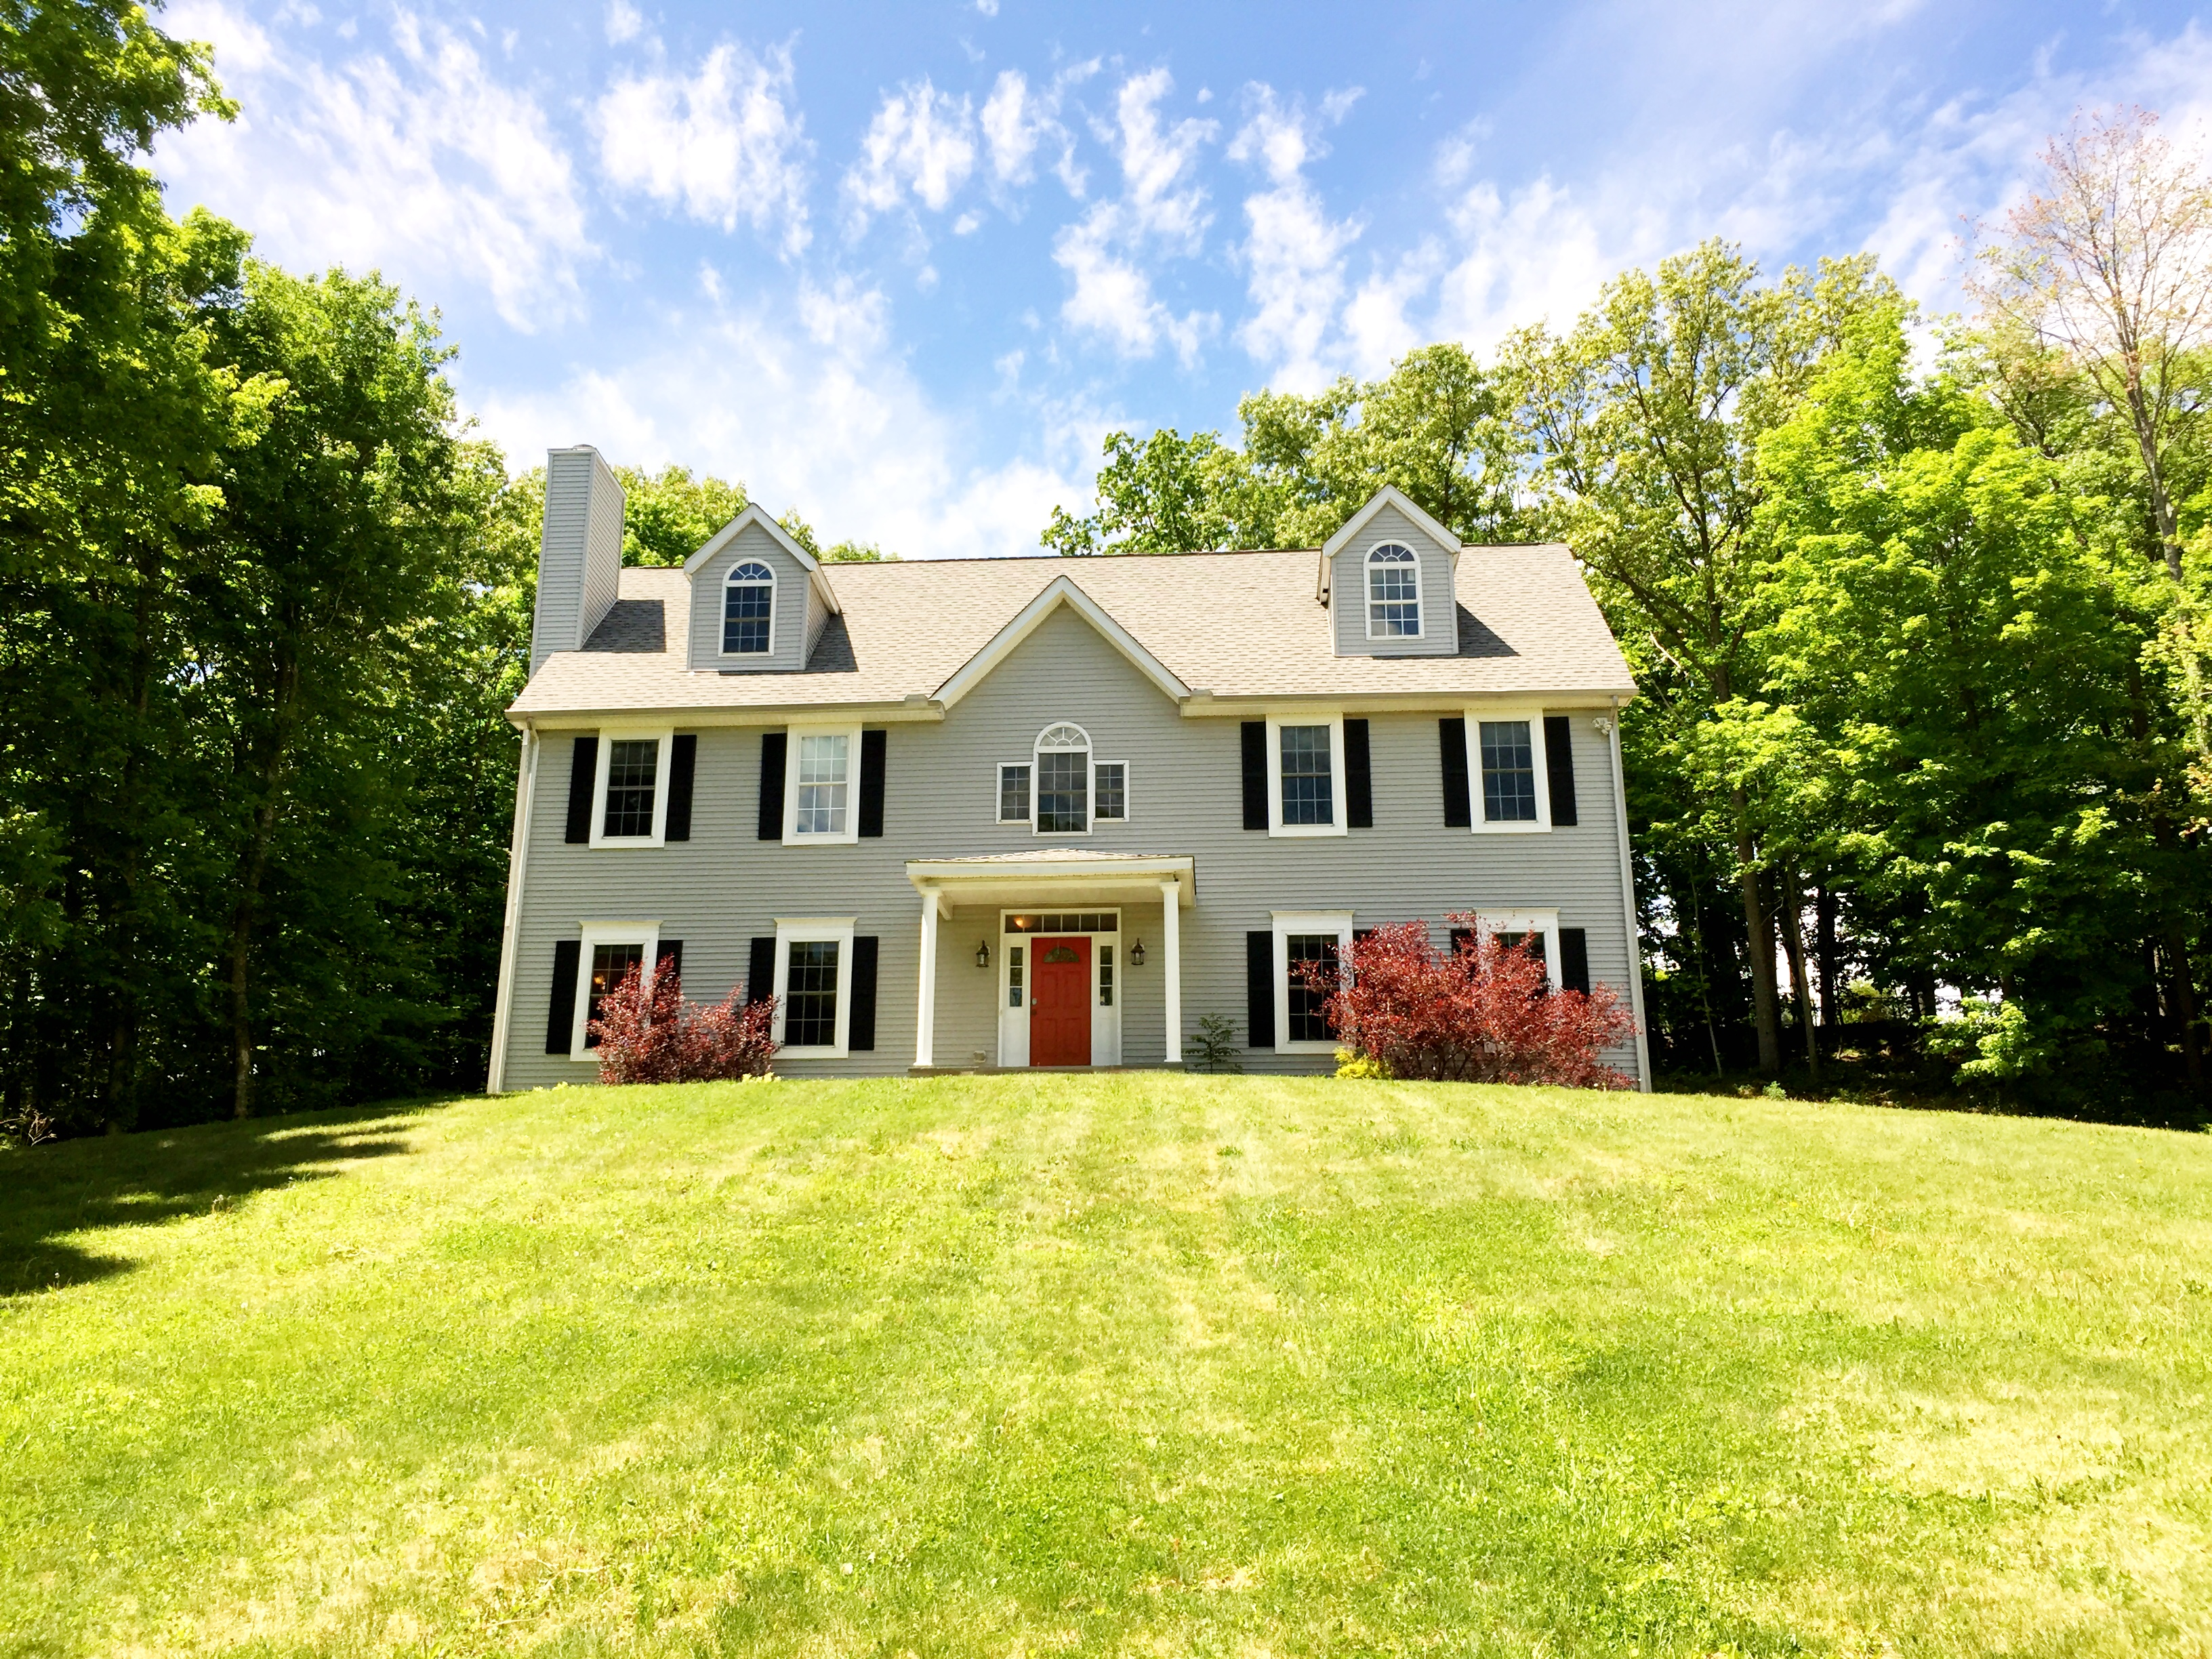 Single Family Home for Sale at Handsome New England Colonial 56 South King Street Danbury, Connecticut 06811 United States